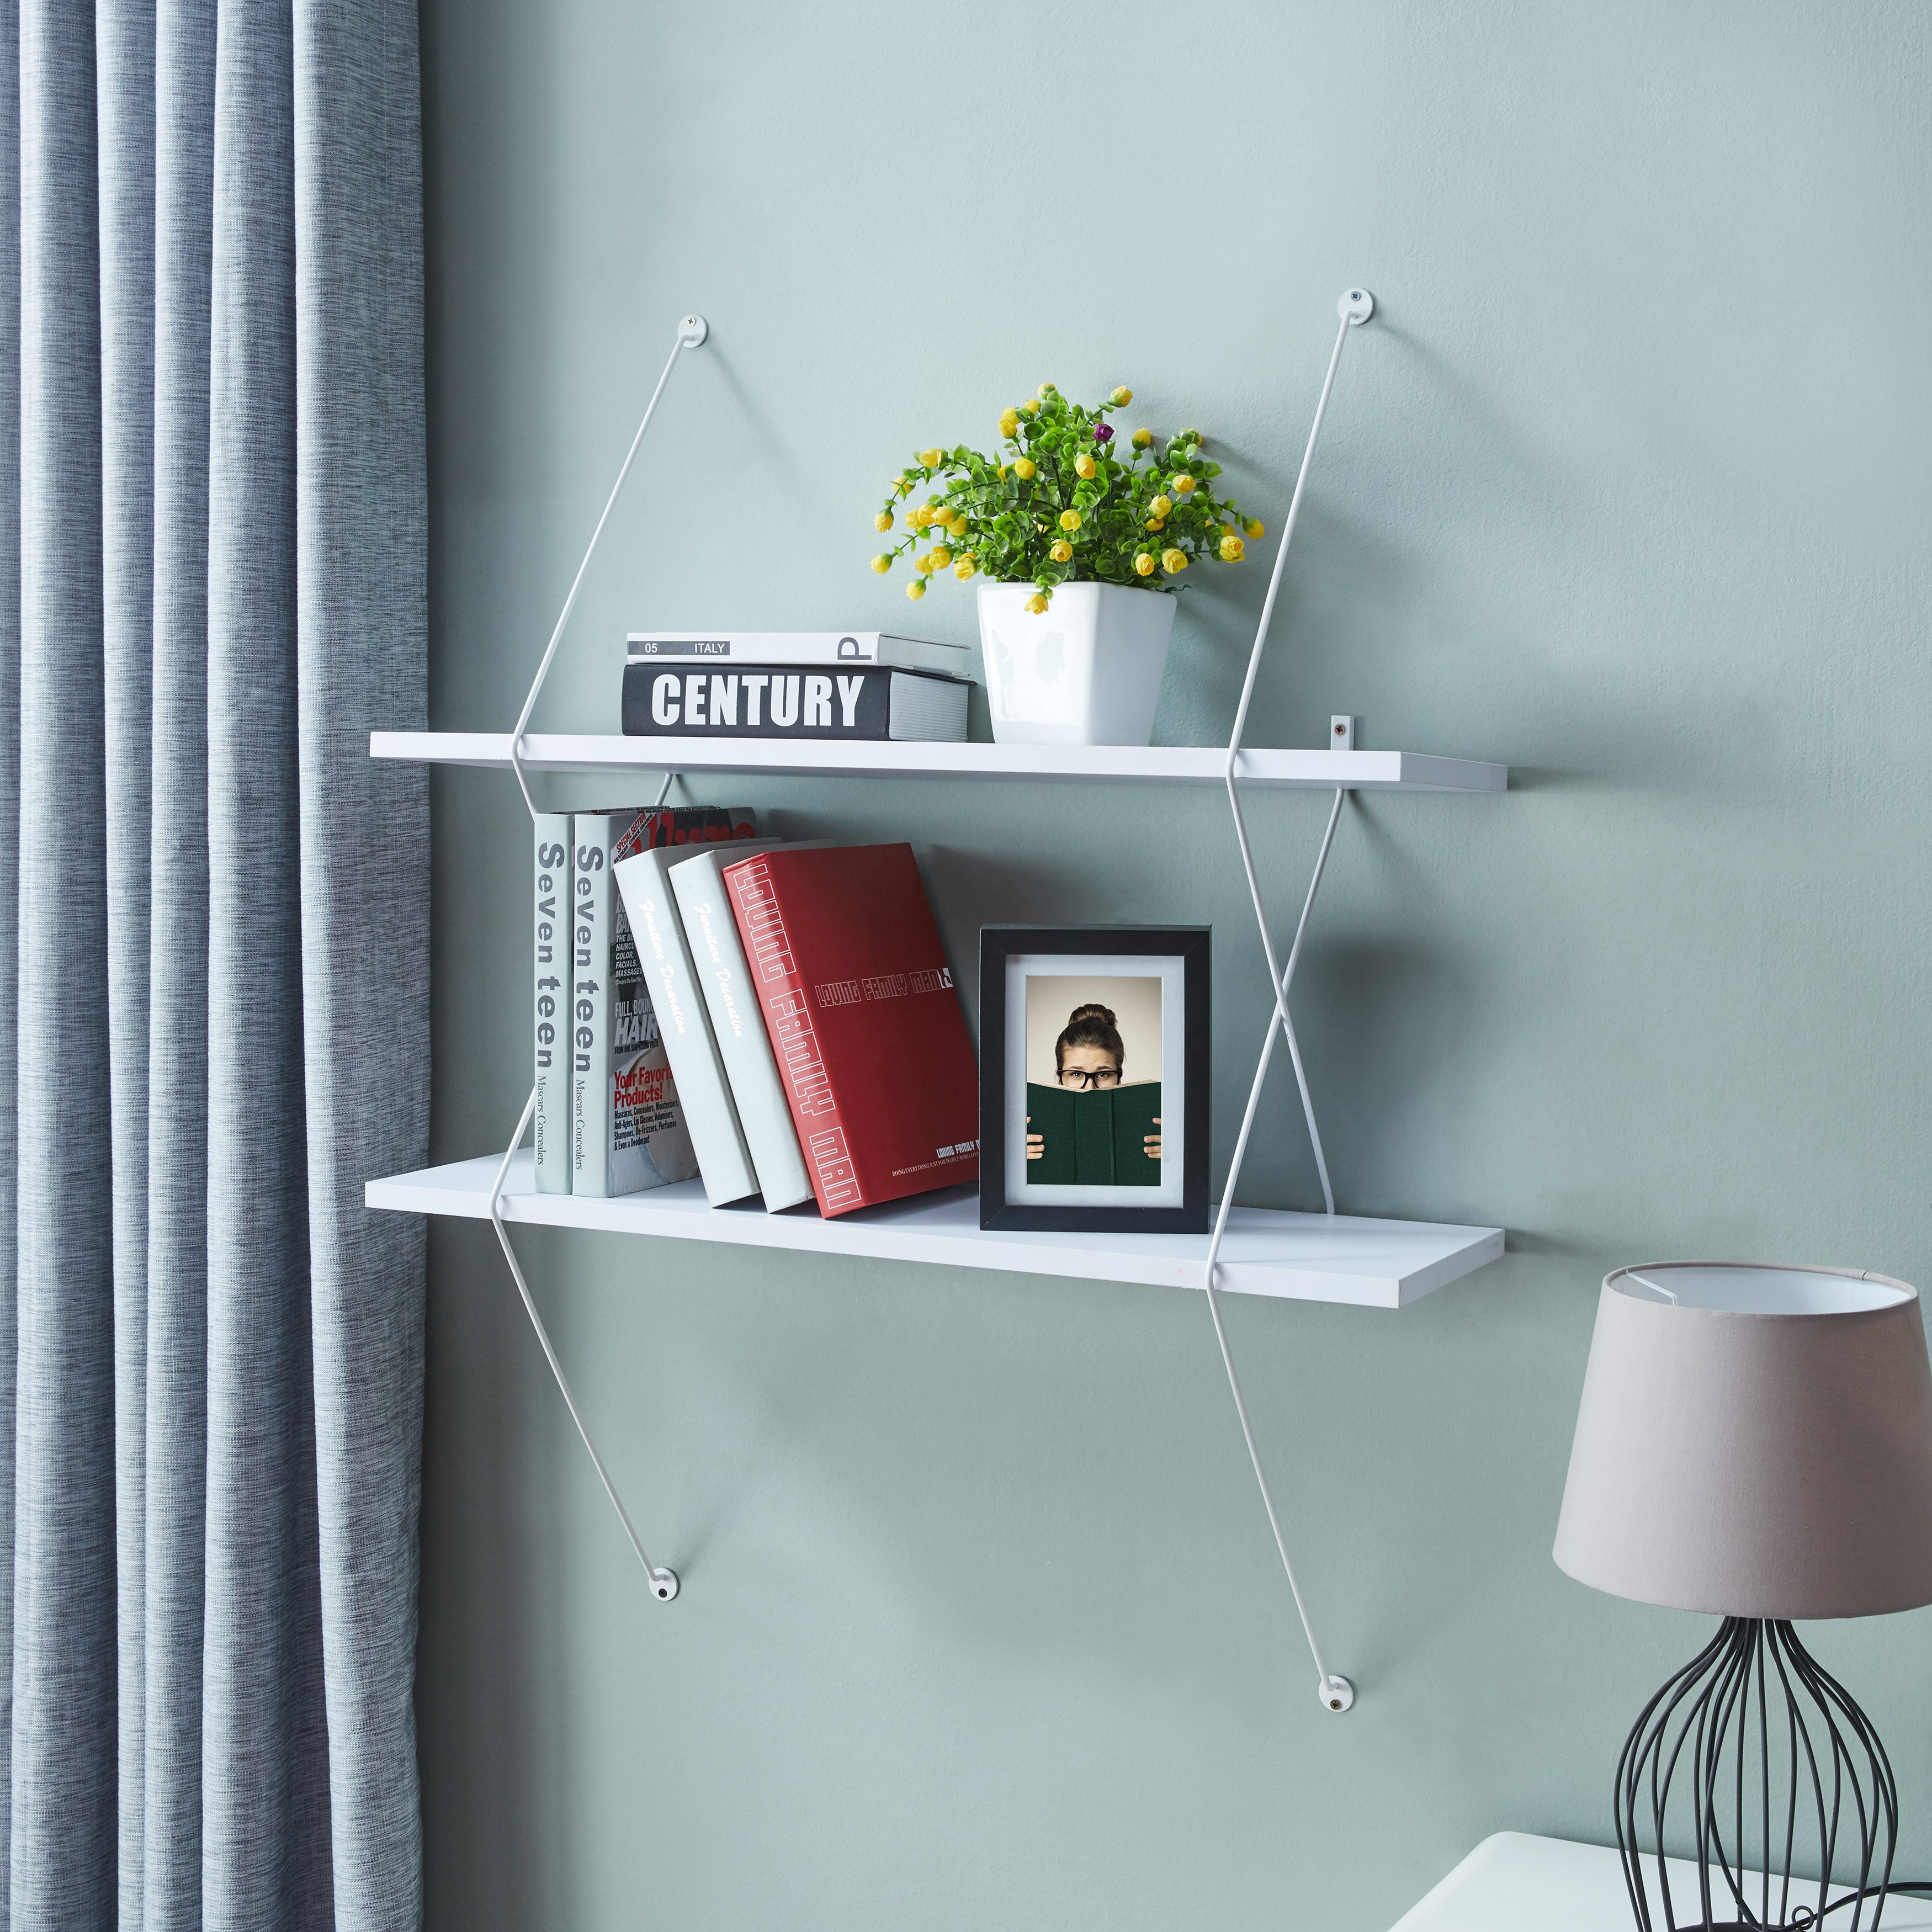 danya contemporary two level wall shelf with wire brackets white floating masters wooden bath metal shelving unit hanging tures drywall without nails computer desks for home